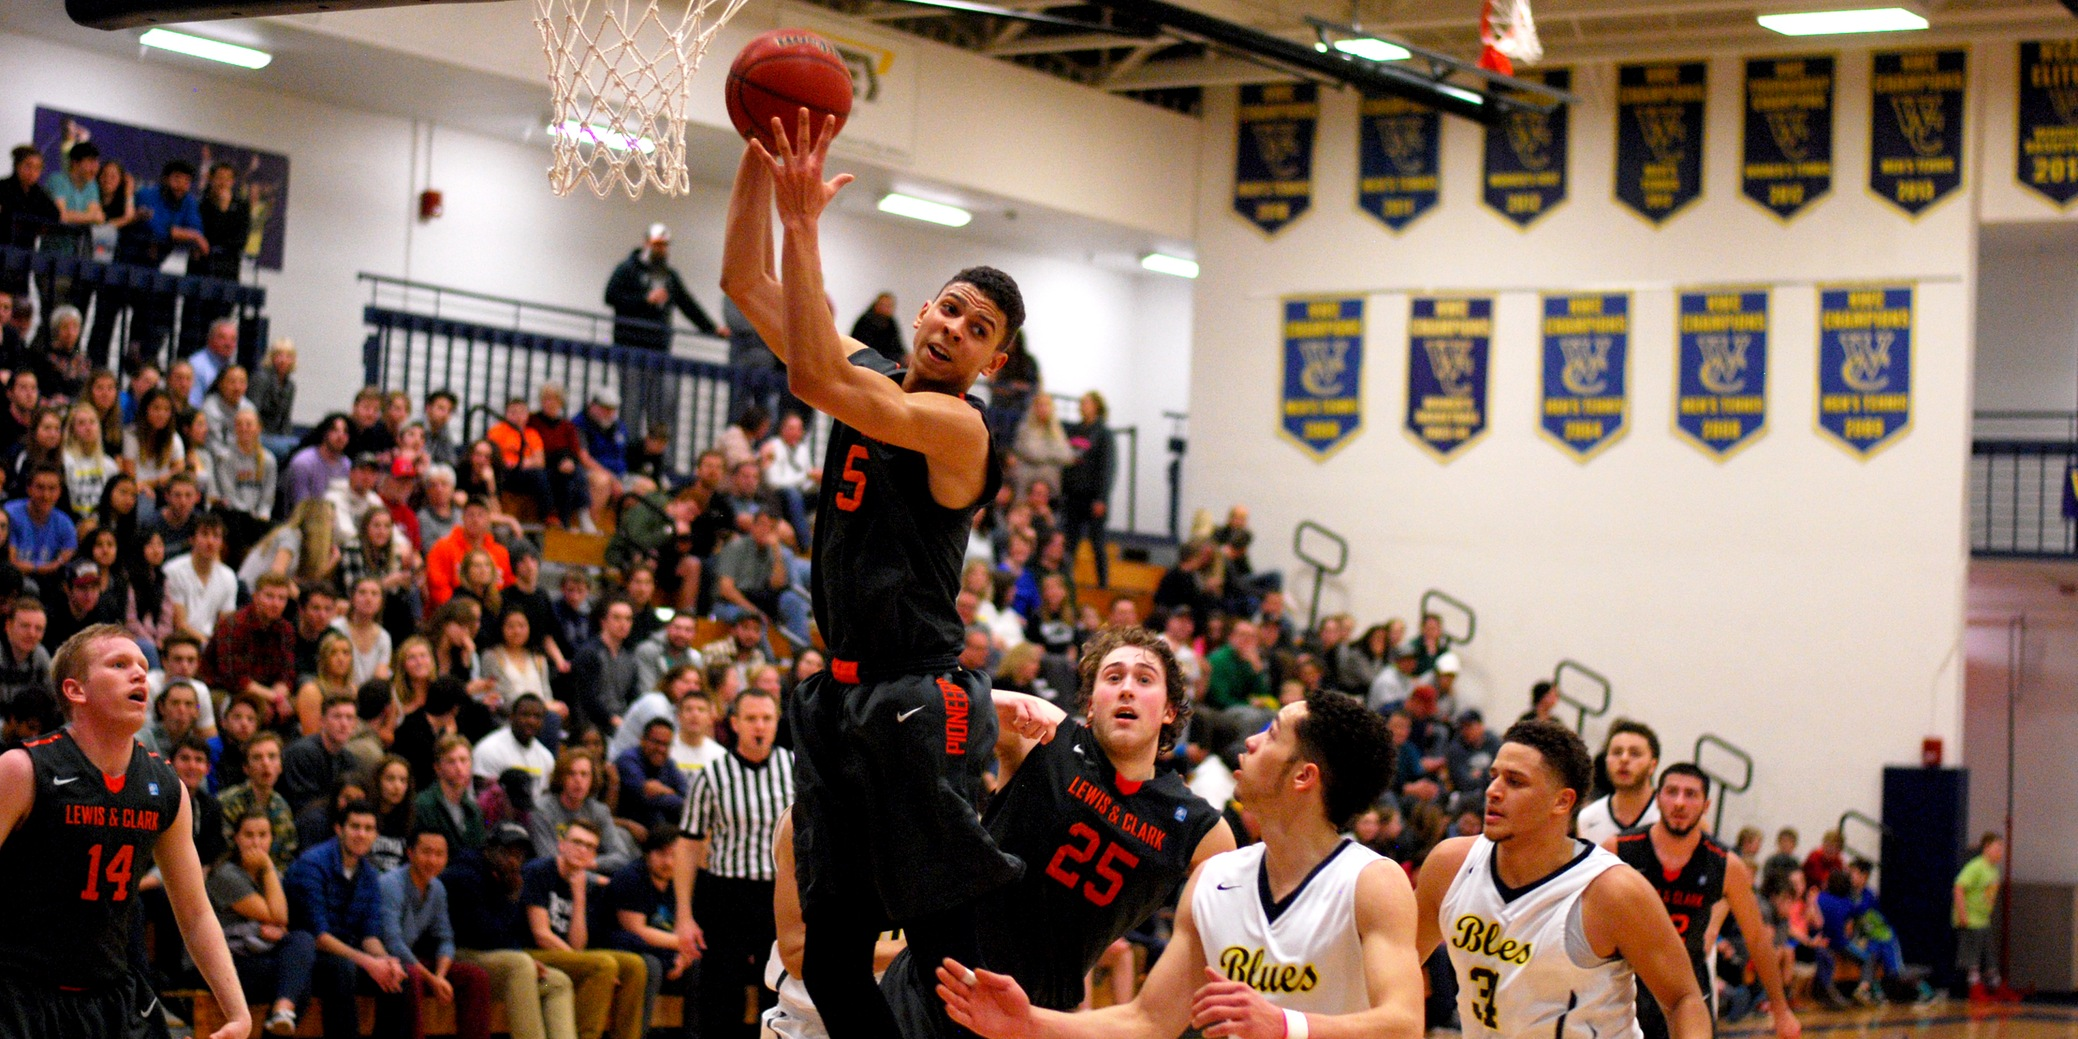 Leonard and Vickers combine for 30 in Lewis & Clark's loss at Whitman